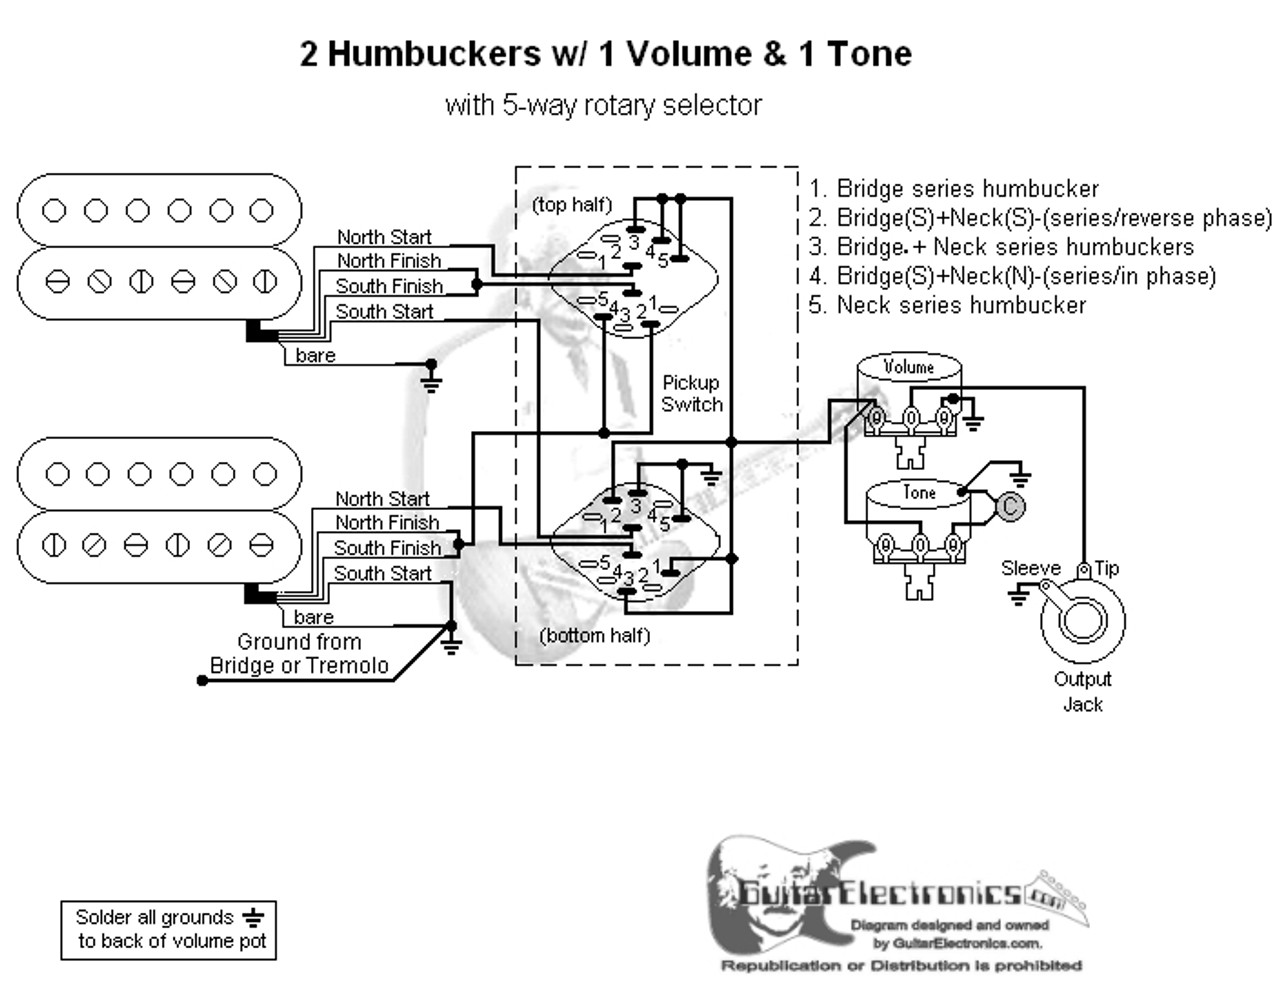 2 Humbuckers/5-Way Rotary Switch/1 Volume/1 Tone/03 on 3 phase wire size chart, 3 phase generator diagram, 3 phase switch installation, 3 phase to single phase wiring, 3 phase electric motor diagrams, 3 phase 208v wiring-diagram, 3 phase wiring for dummies, 3 phase wire color code, 3 phase motor wiring diagrams, 3 phase motor wiring connection, 3 phase capacitor diagram, 3 phase ac motor wiring, 3 phase diagram of automatic change over switch, 3 phase toggle switch, 3 phase transfer diagram, 3 phase switches combination, 3 phase circuit diagrams,